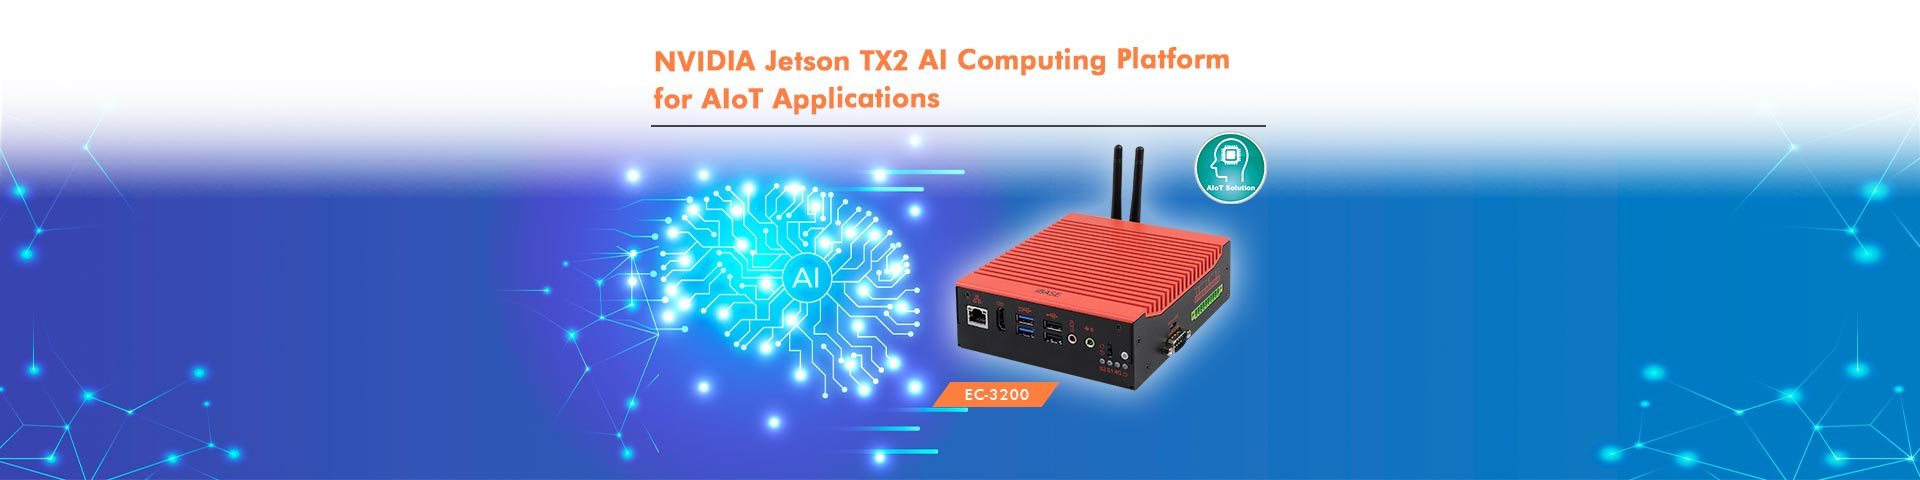 NVIDIA Jetson TX2 AI Computing Platform for AIoT Applications